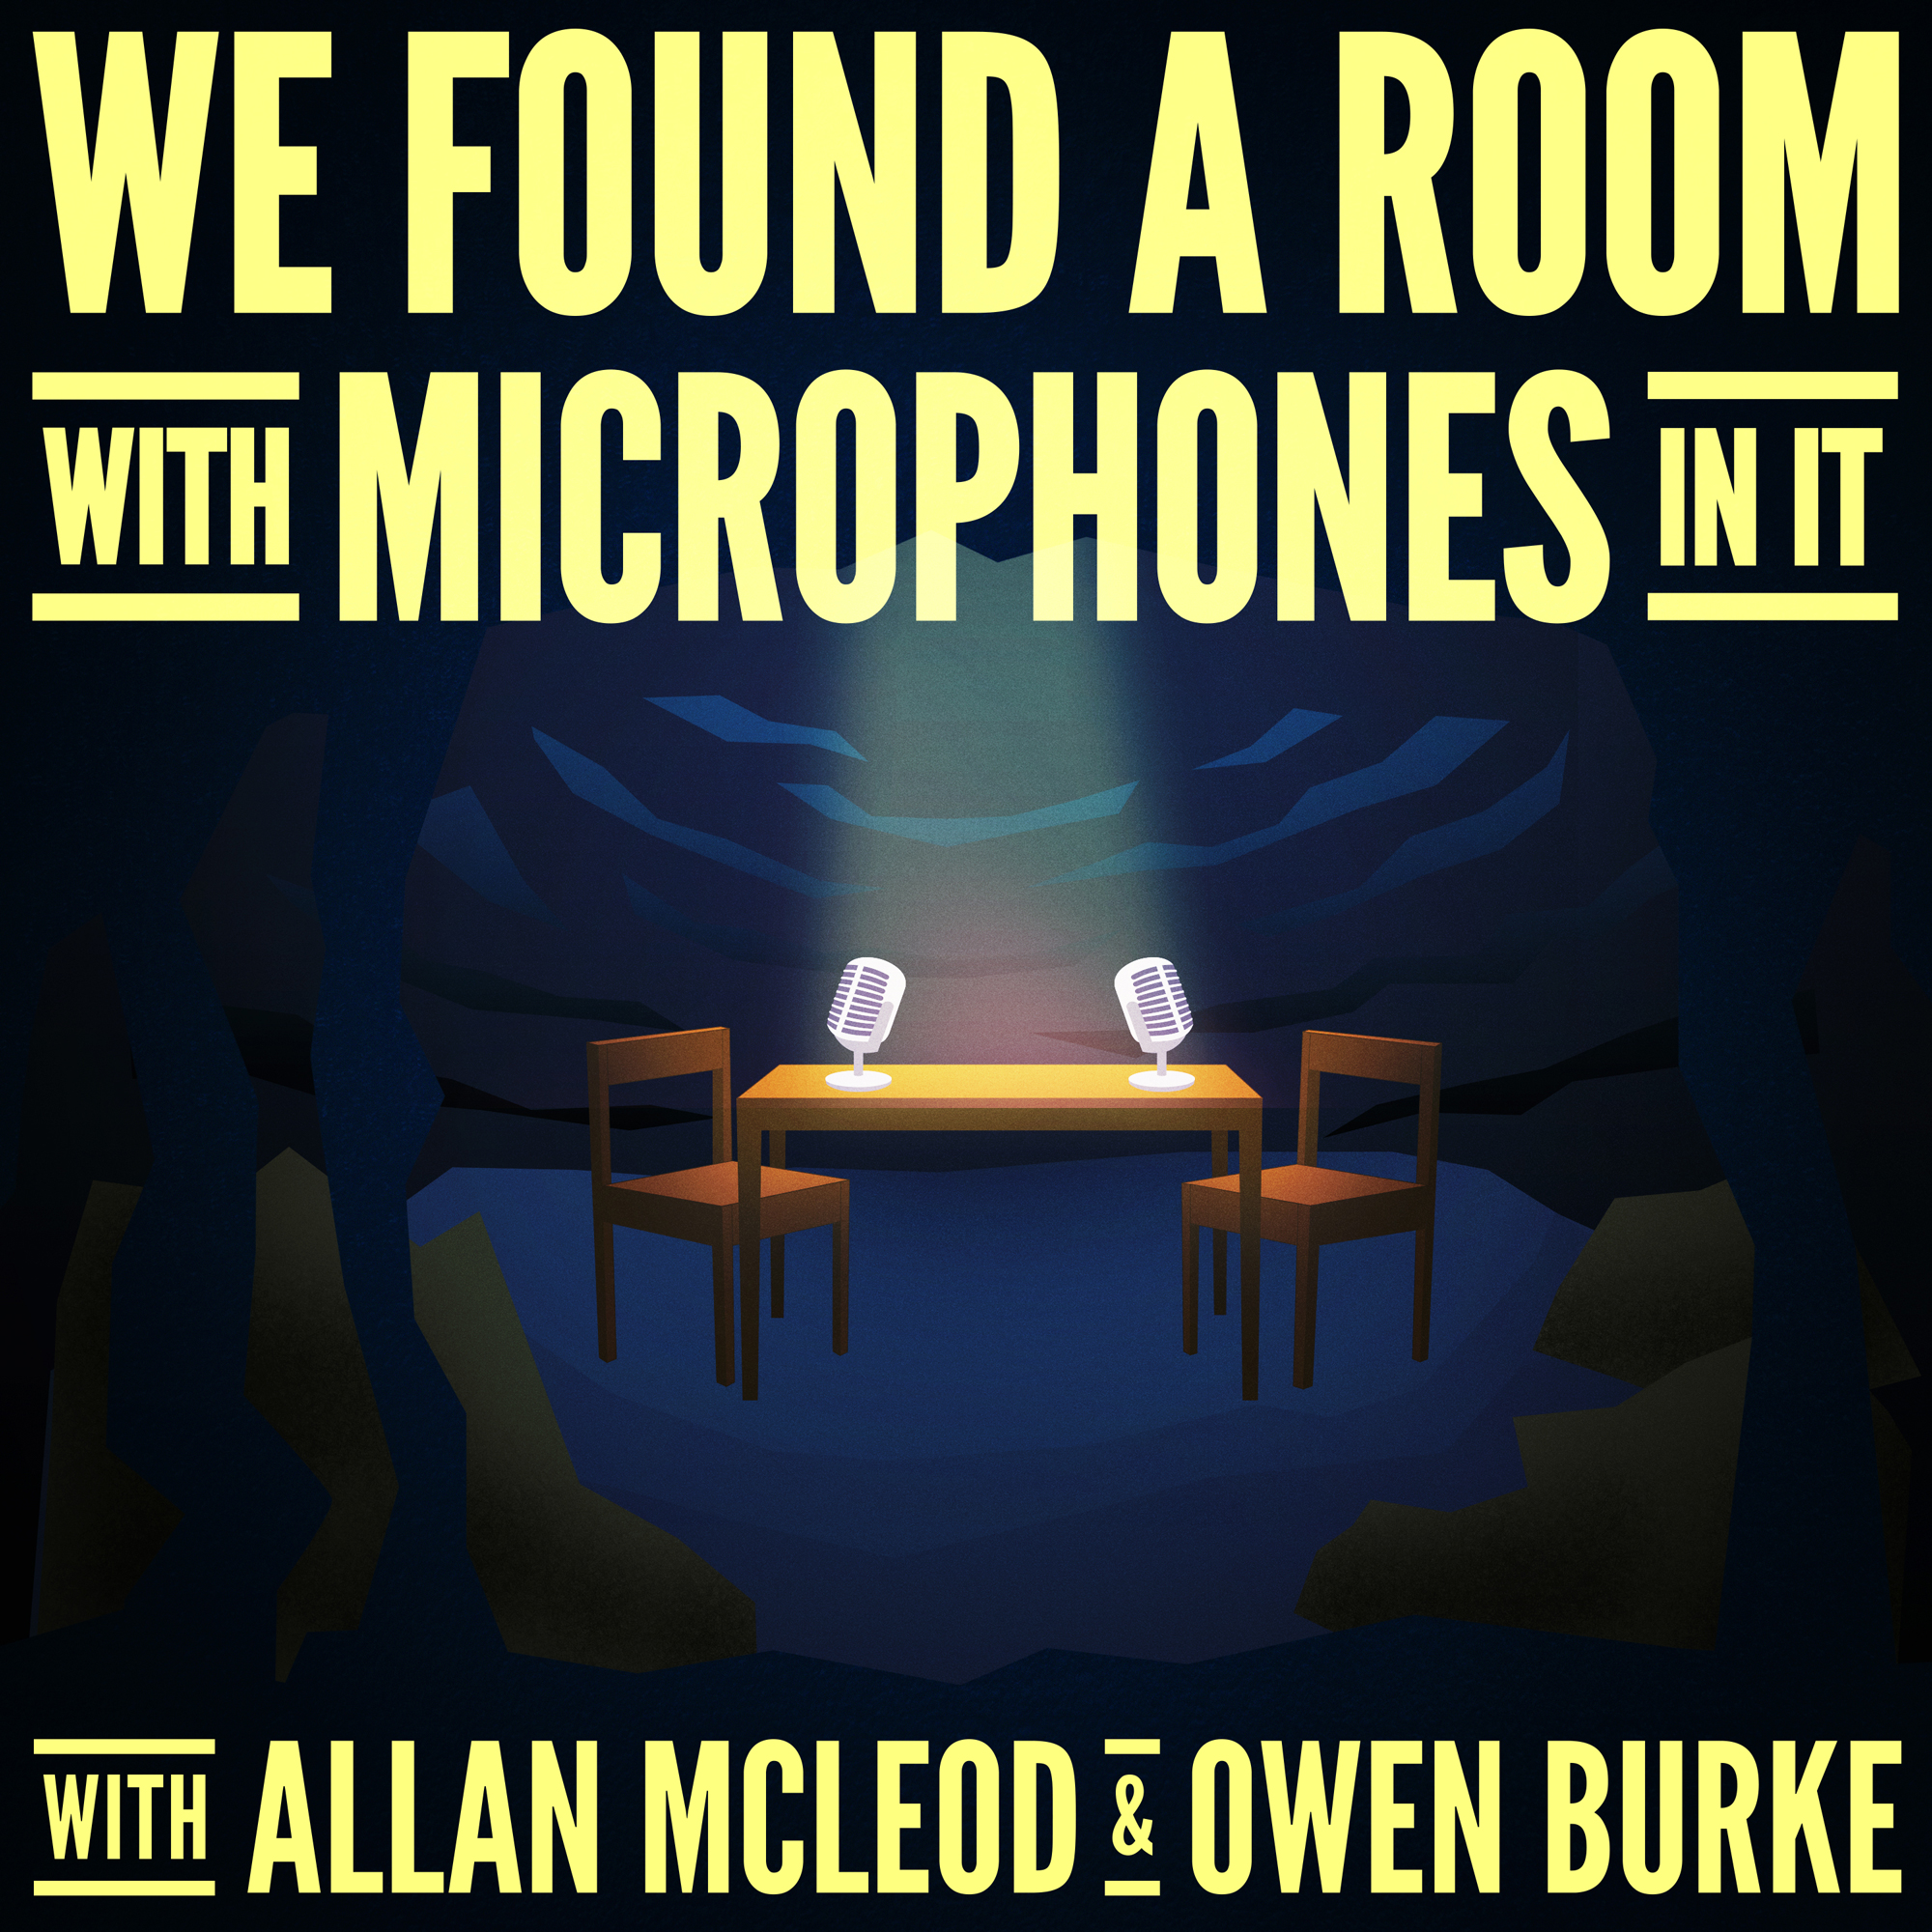 We Found A Room With Microphones In It